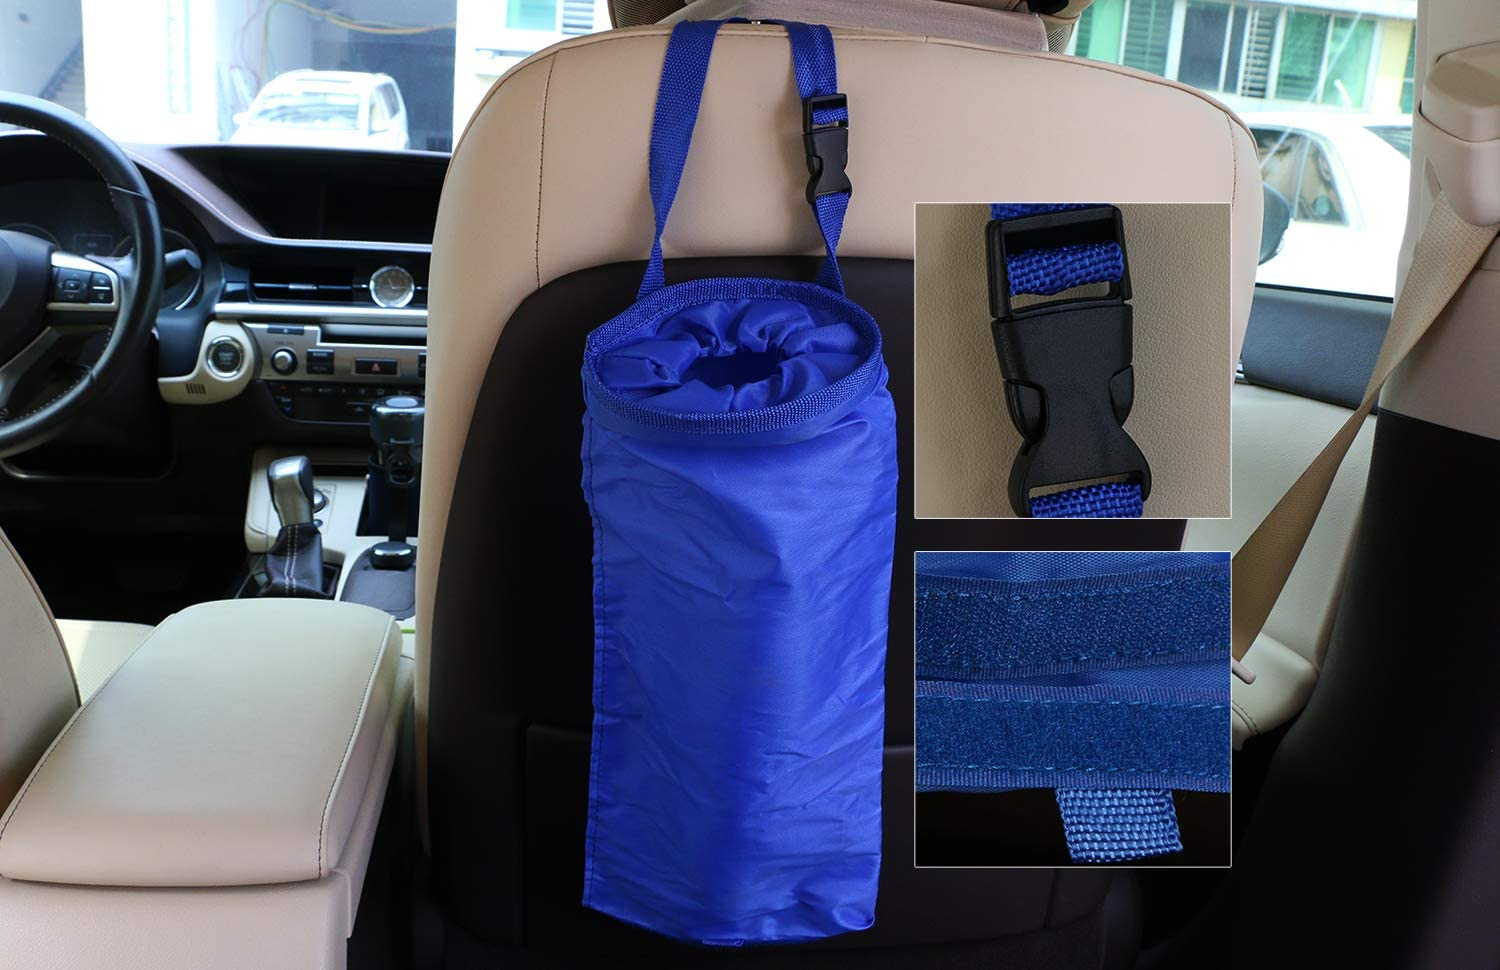 Mini Skater 2 Pcs Car Trash Bags Black Blue Reusable Portable Washable Small Adjustable Leakproof Eco-Friendly Seat Back Hanging Litter Garbage Bag for Outdoor Traveling Home Use